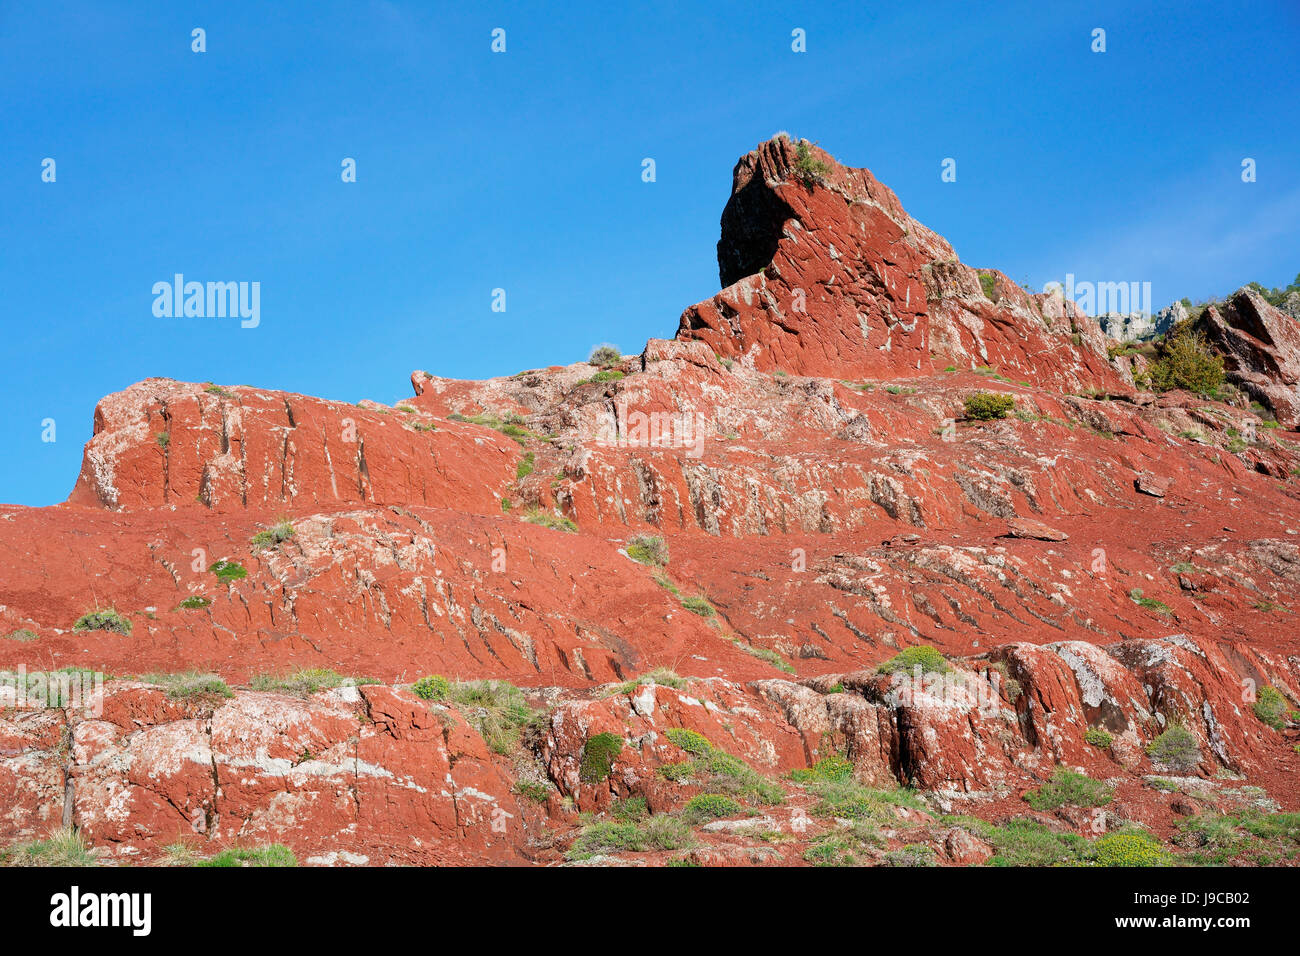 RED OUTCROP IN A REMOTE LOCATION IN THE FRENCH RIVIERA'S BACKCOUNTRY. L'Illion, Beuil, Alpes-Maritimes, - Stock Image